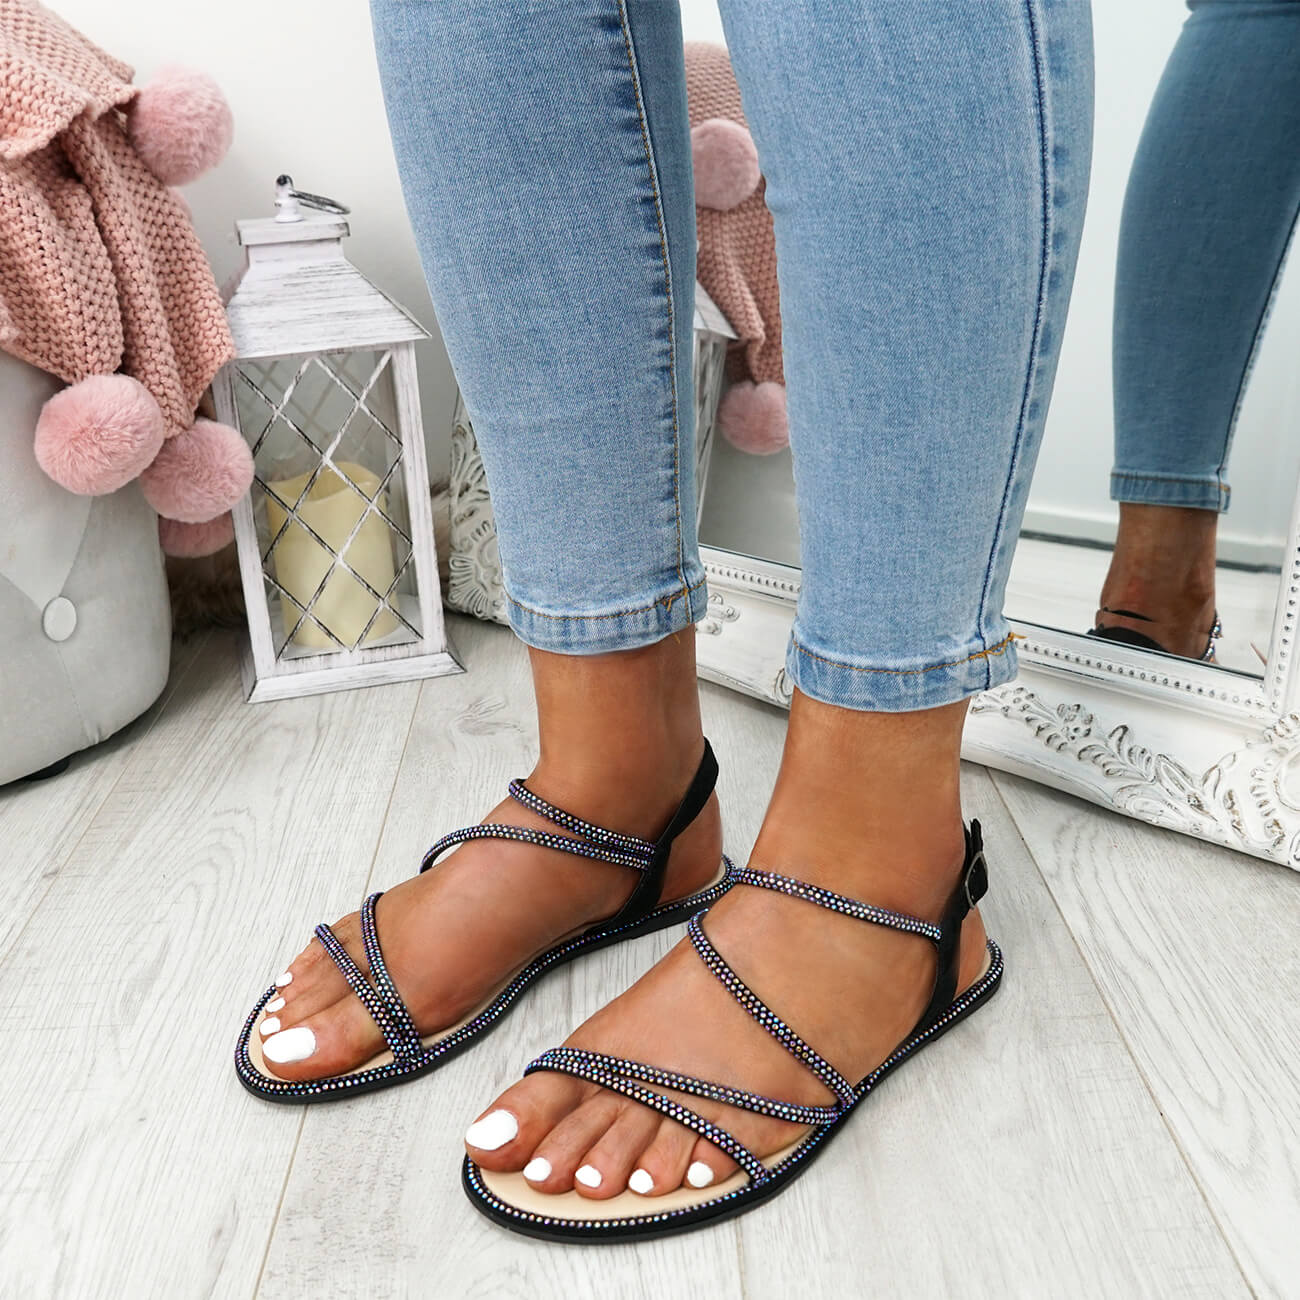 WOMENS-LADIES-STUDDED-ANKLE-STRAP-FLAT-SHOES-PARTY-CLUB-SANDALS-SHOES-SIZE-UK thumbnail 9